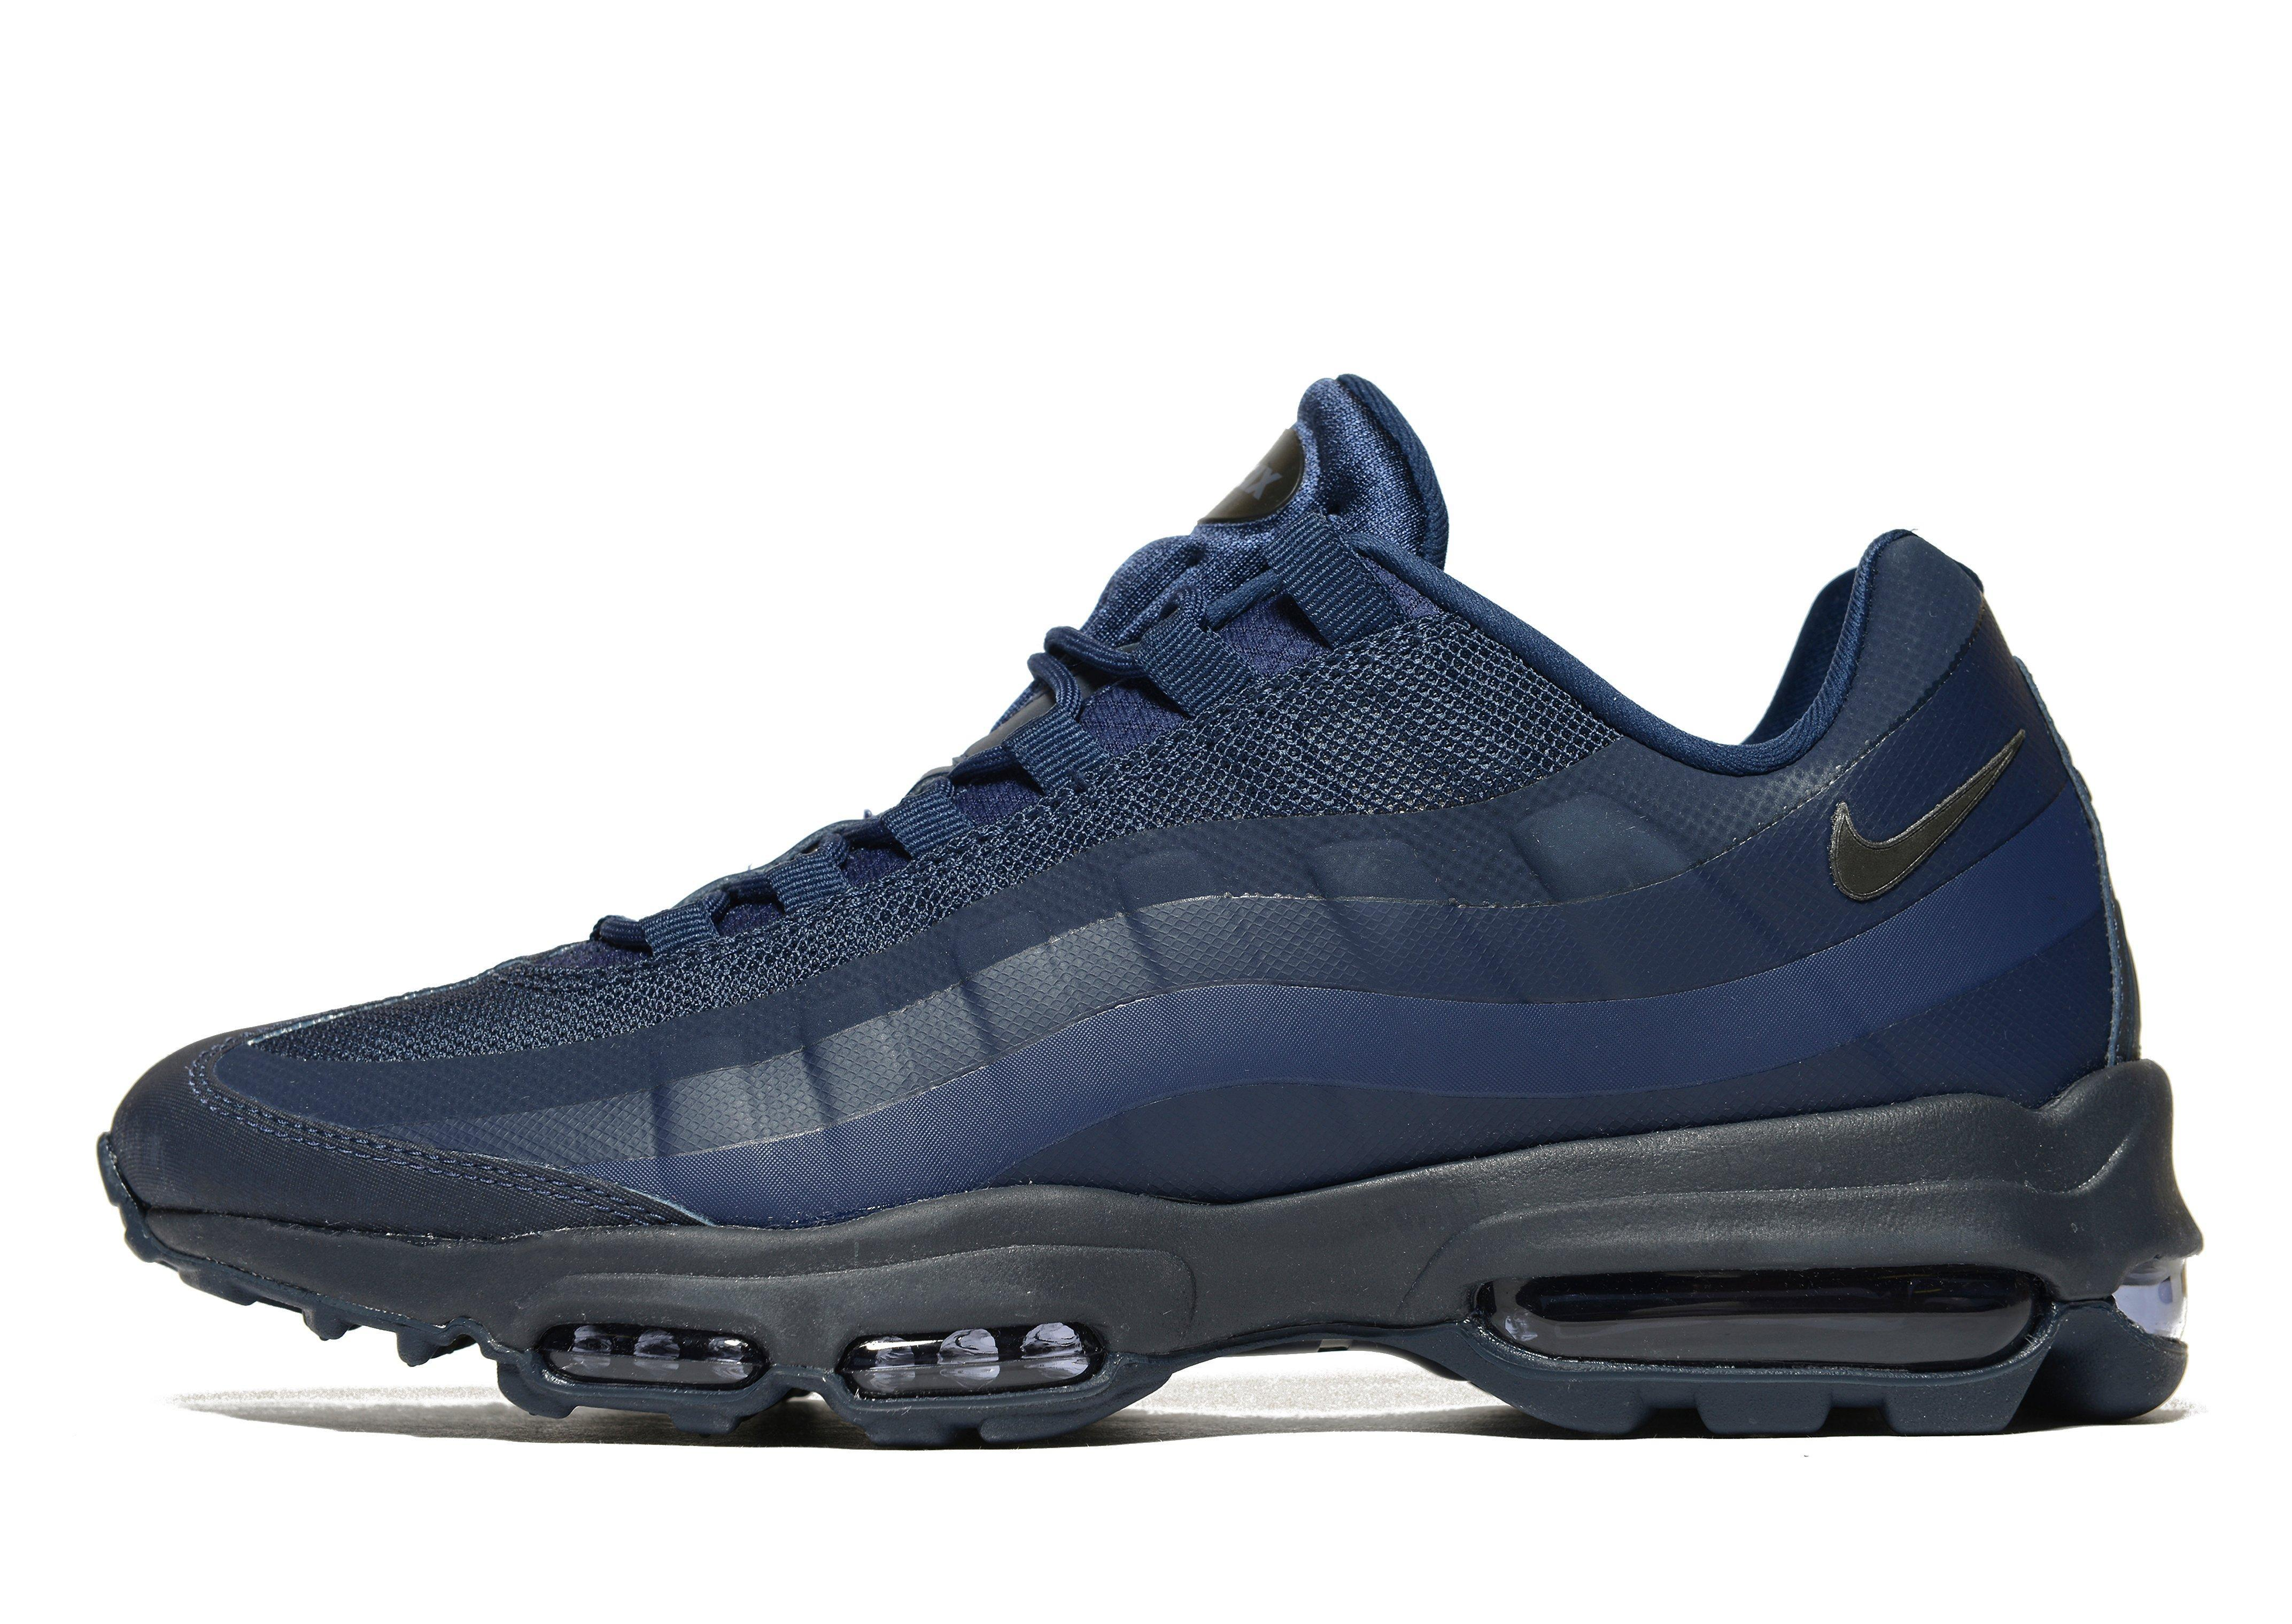 lyst nike air max 95 ultra essential in blue for men. Black Bedroom Furniture Sets. Home Design Ideas